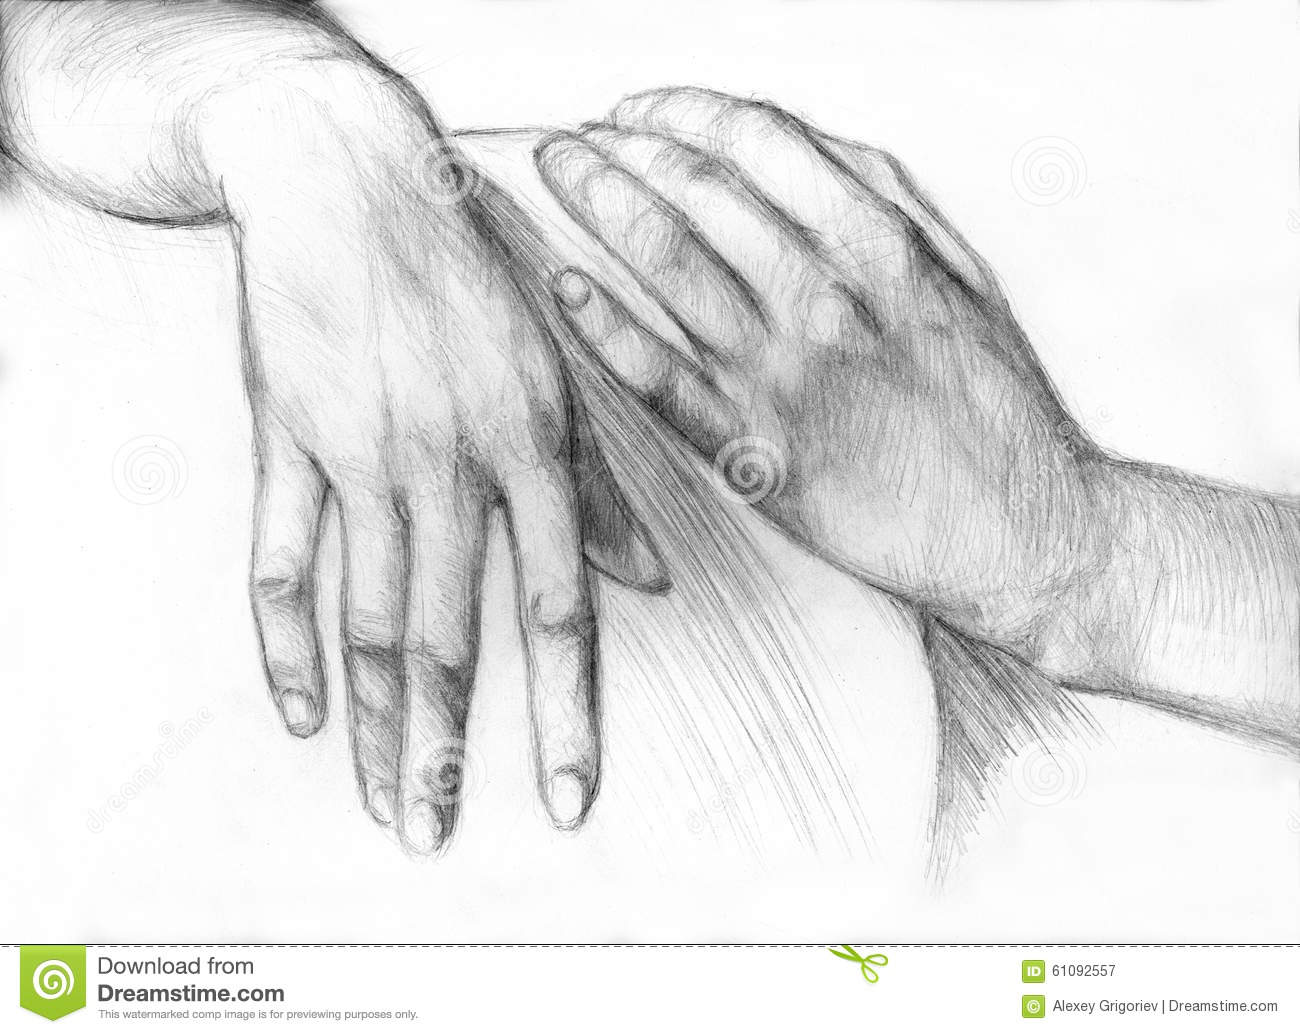 pencil-drawing-hand-tr...